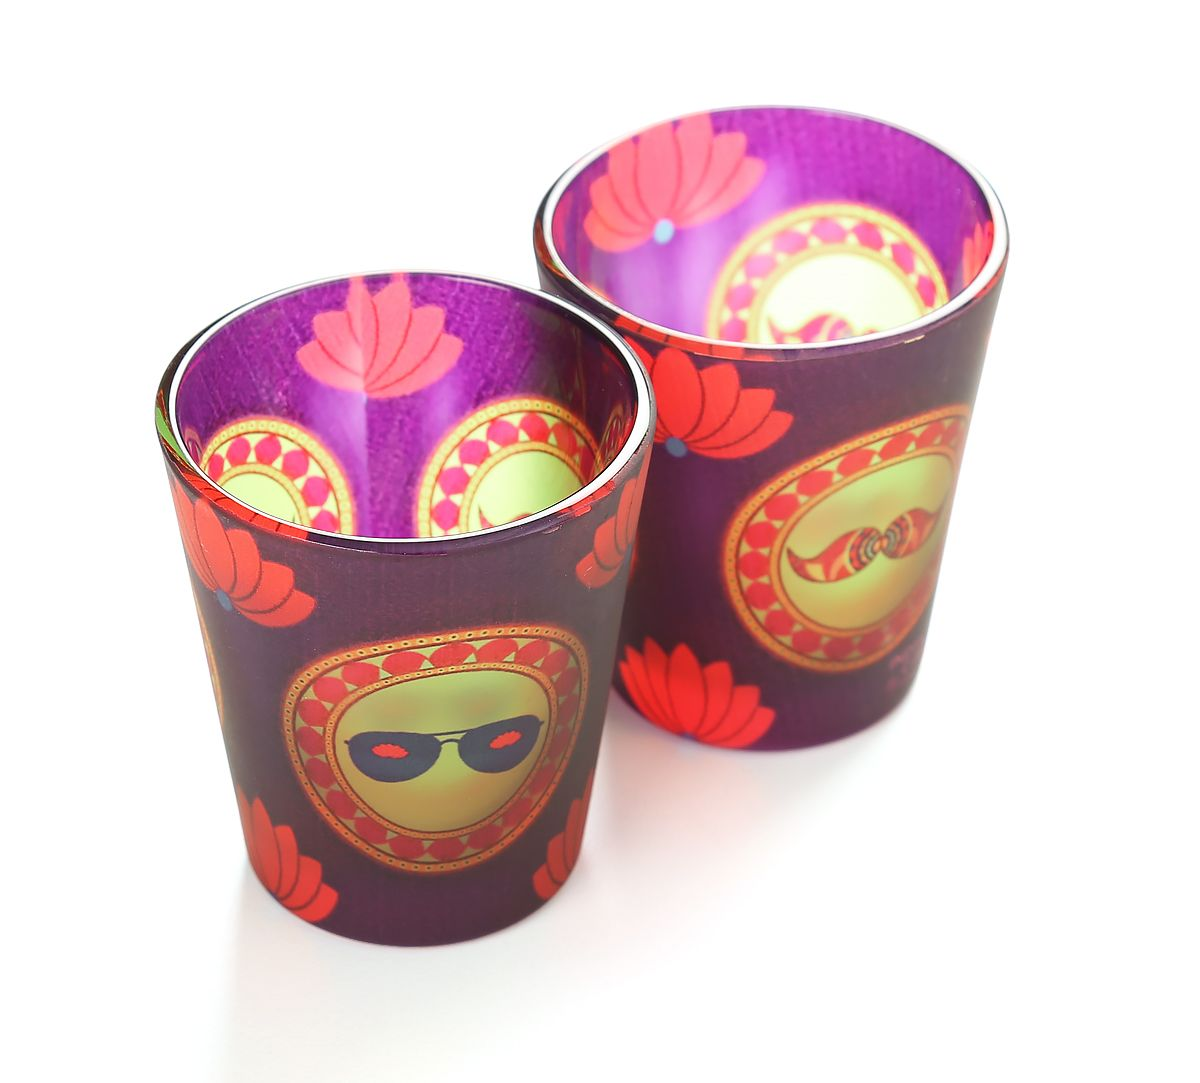 India Circus C'est La Vie Frosted Shot Glasses (Set of 2)